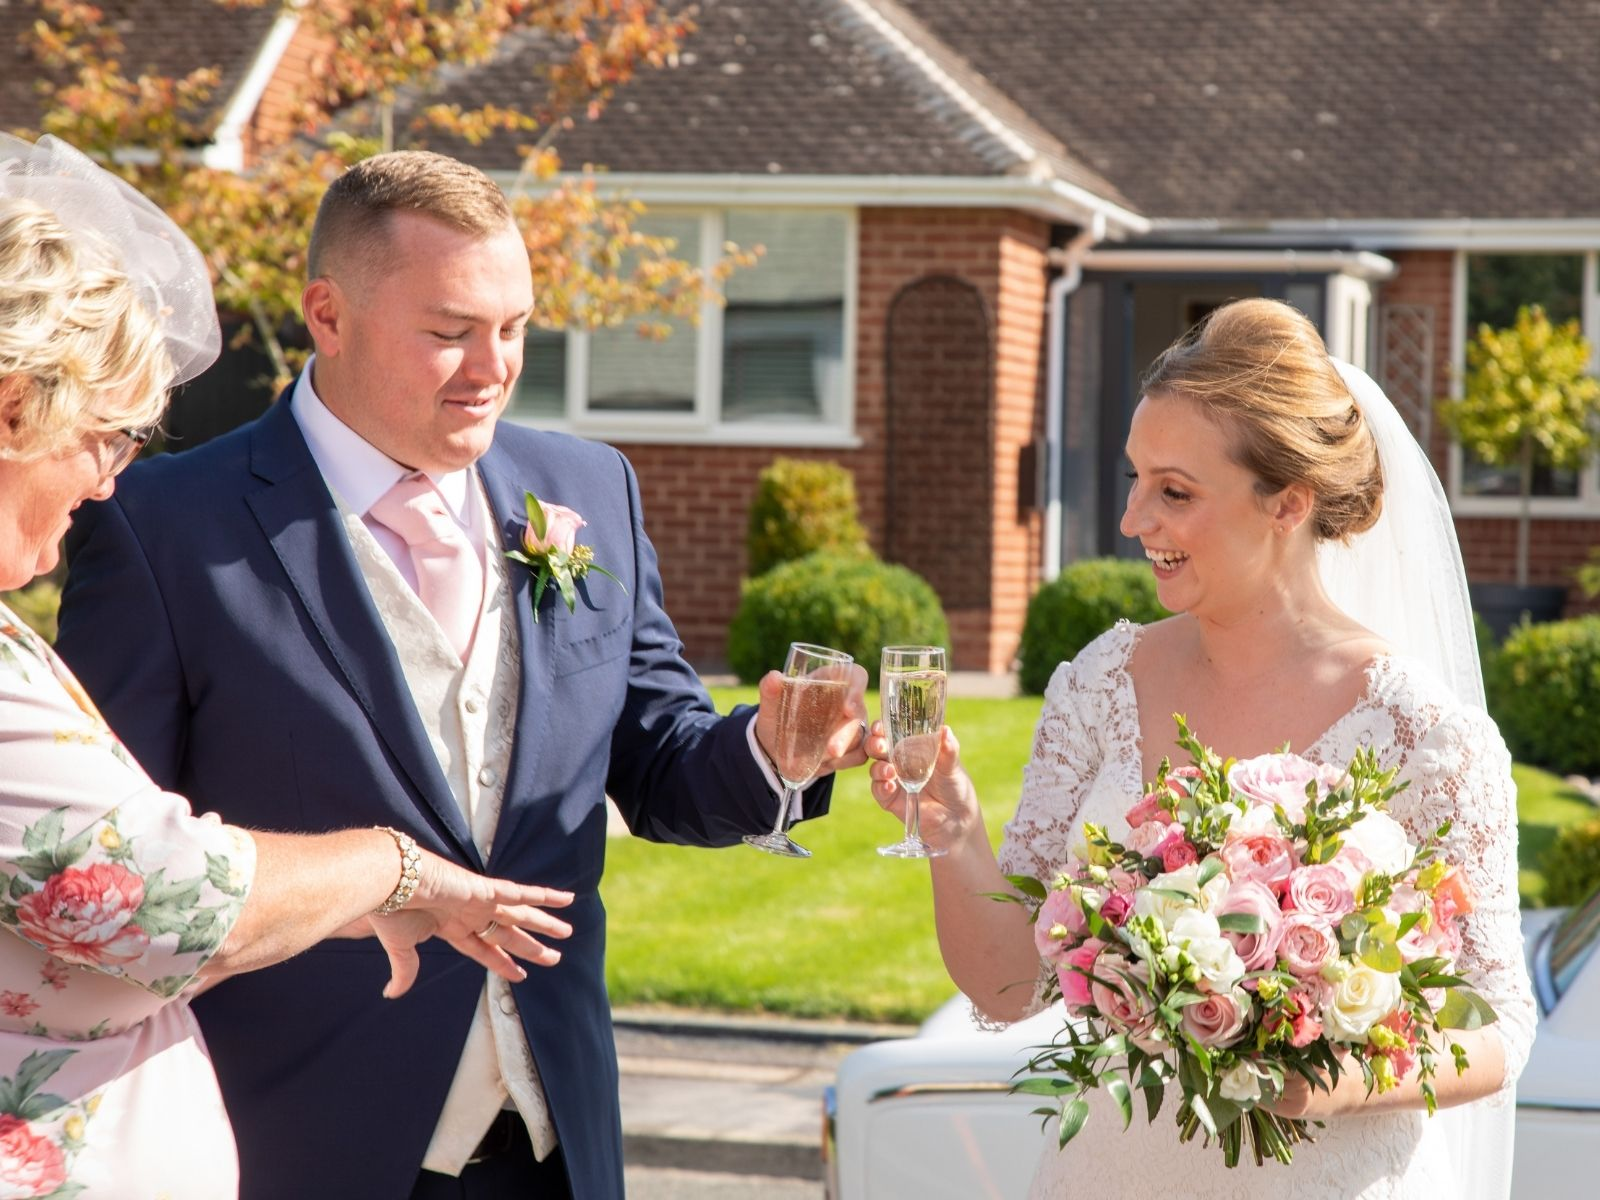 Rachel and Shaun clinking champagne glasses after their wedding ceremony